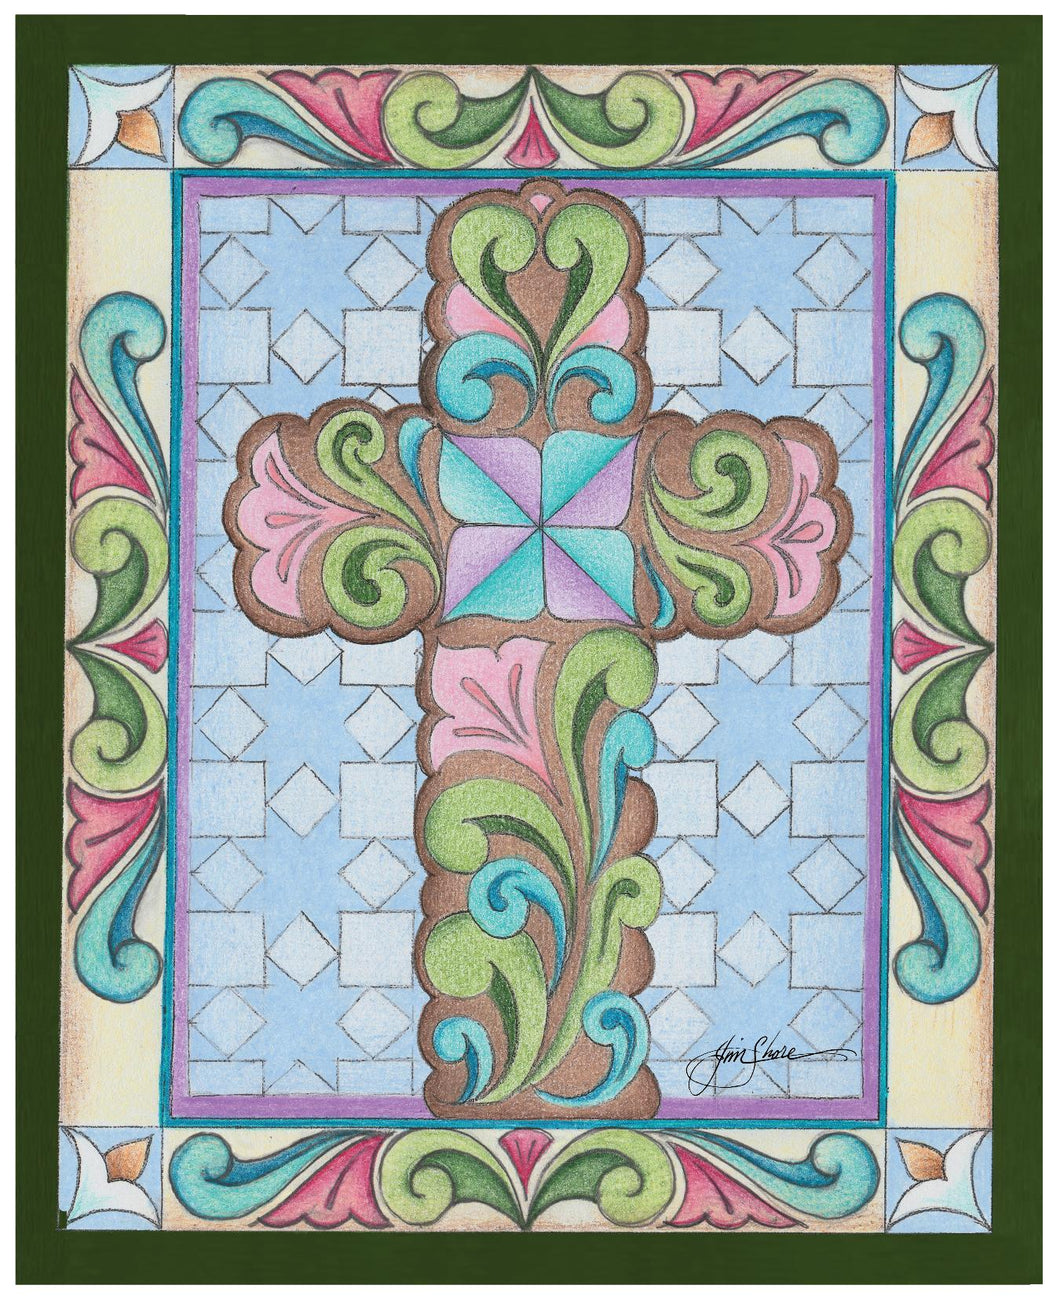 Rosemaling Cross ~ Sketch Art Print